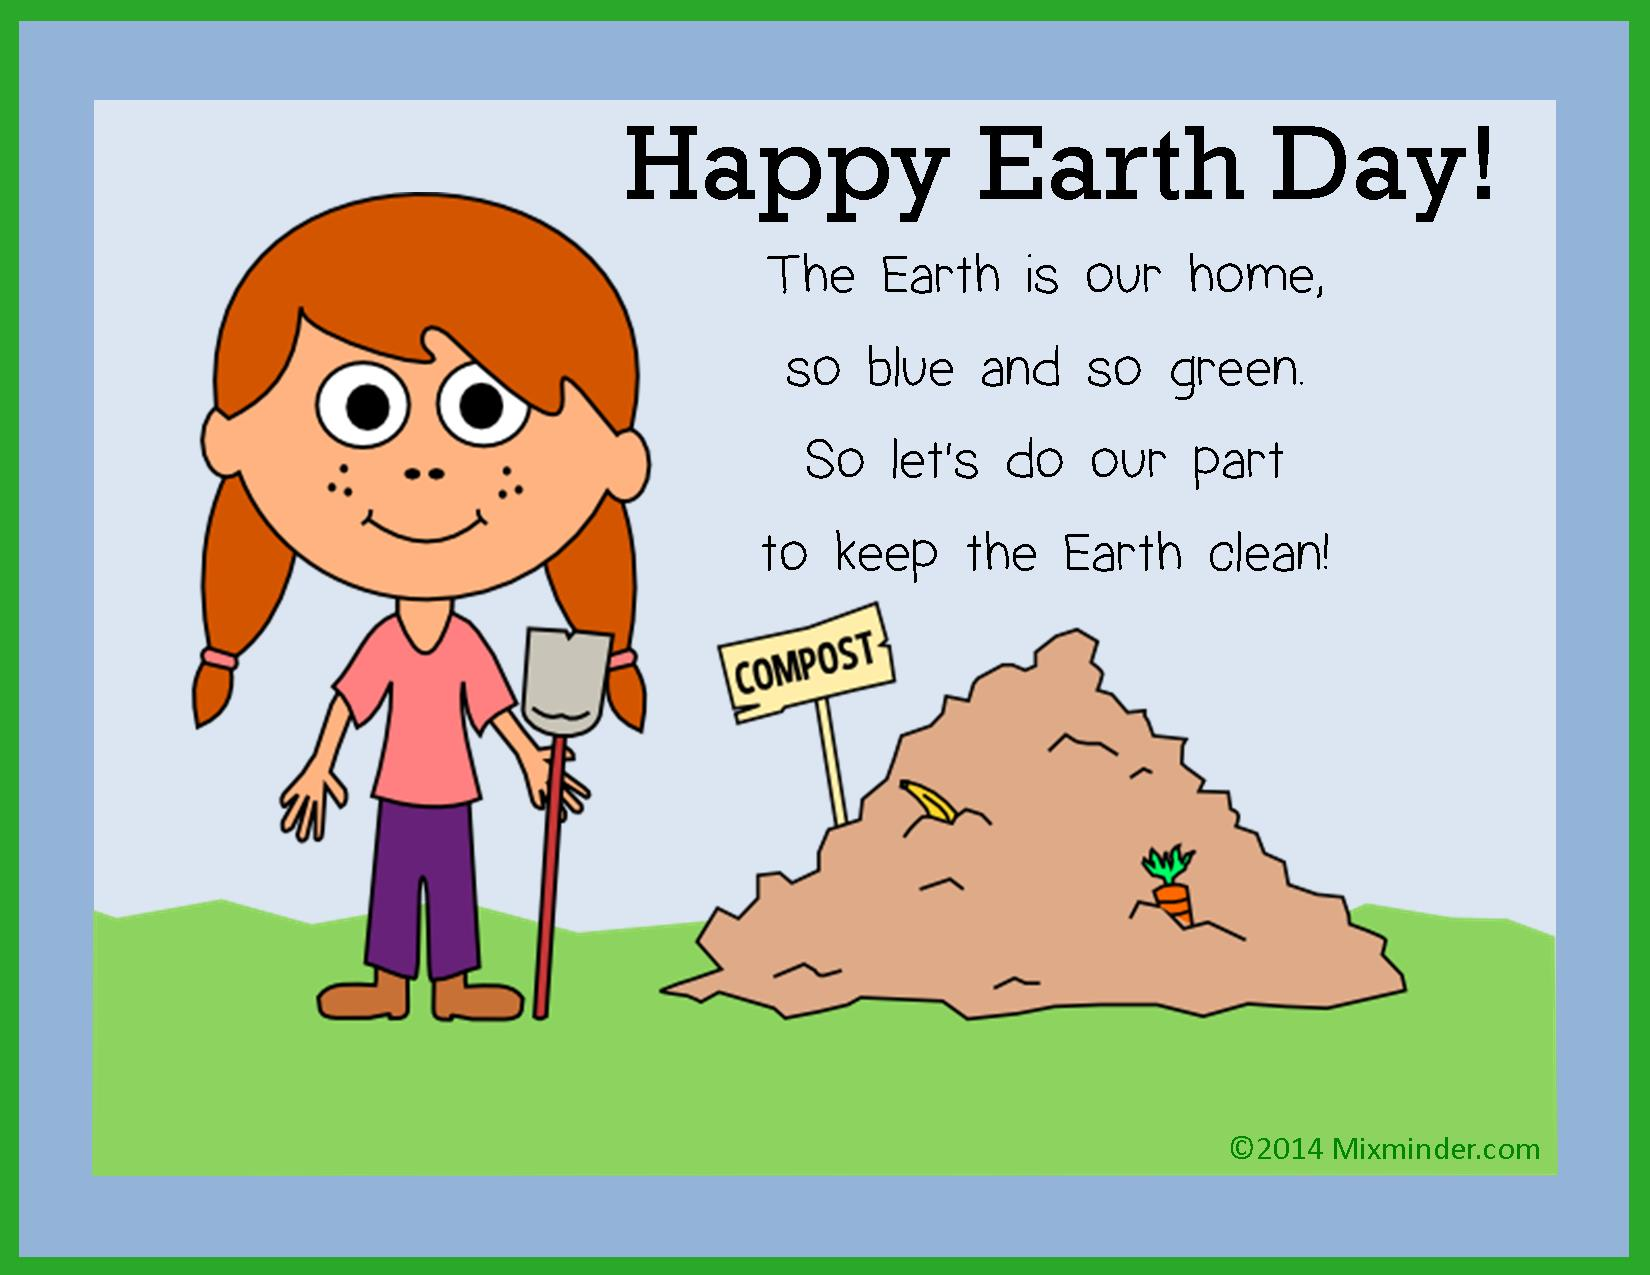 A Poem for Earth Day